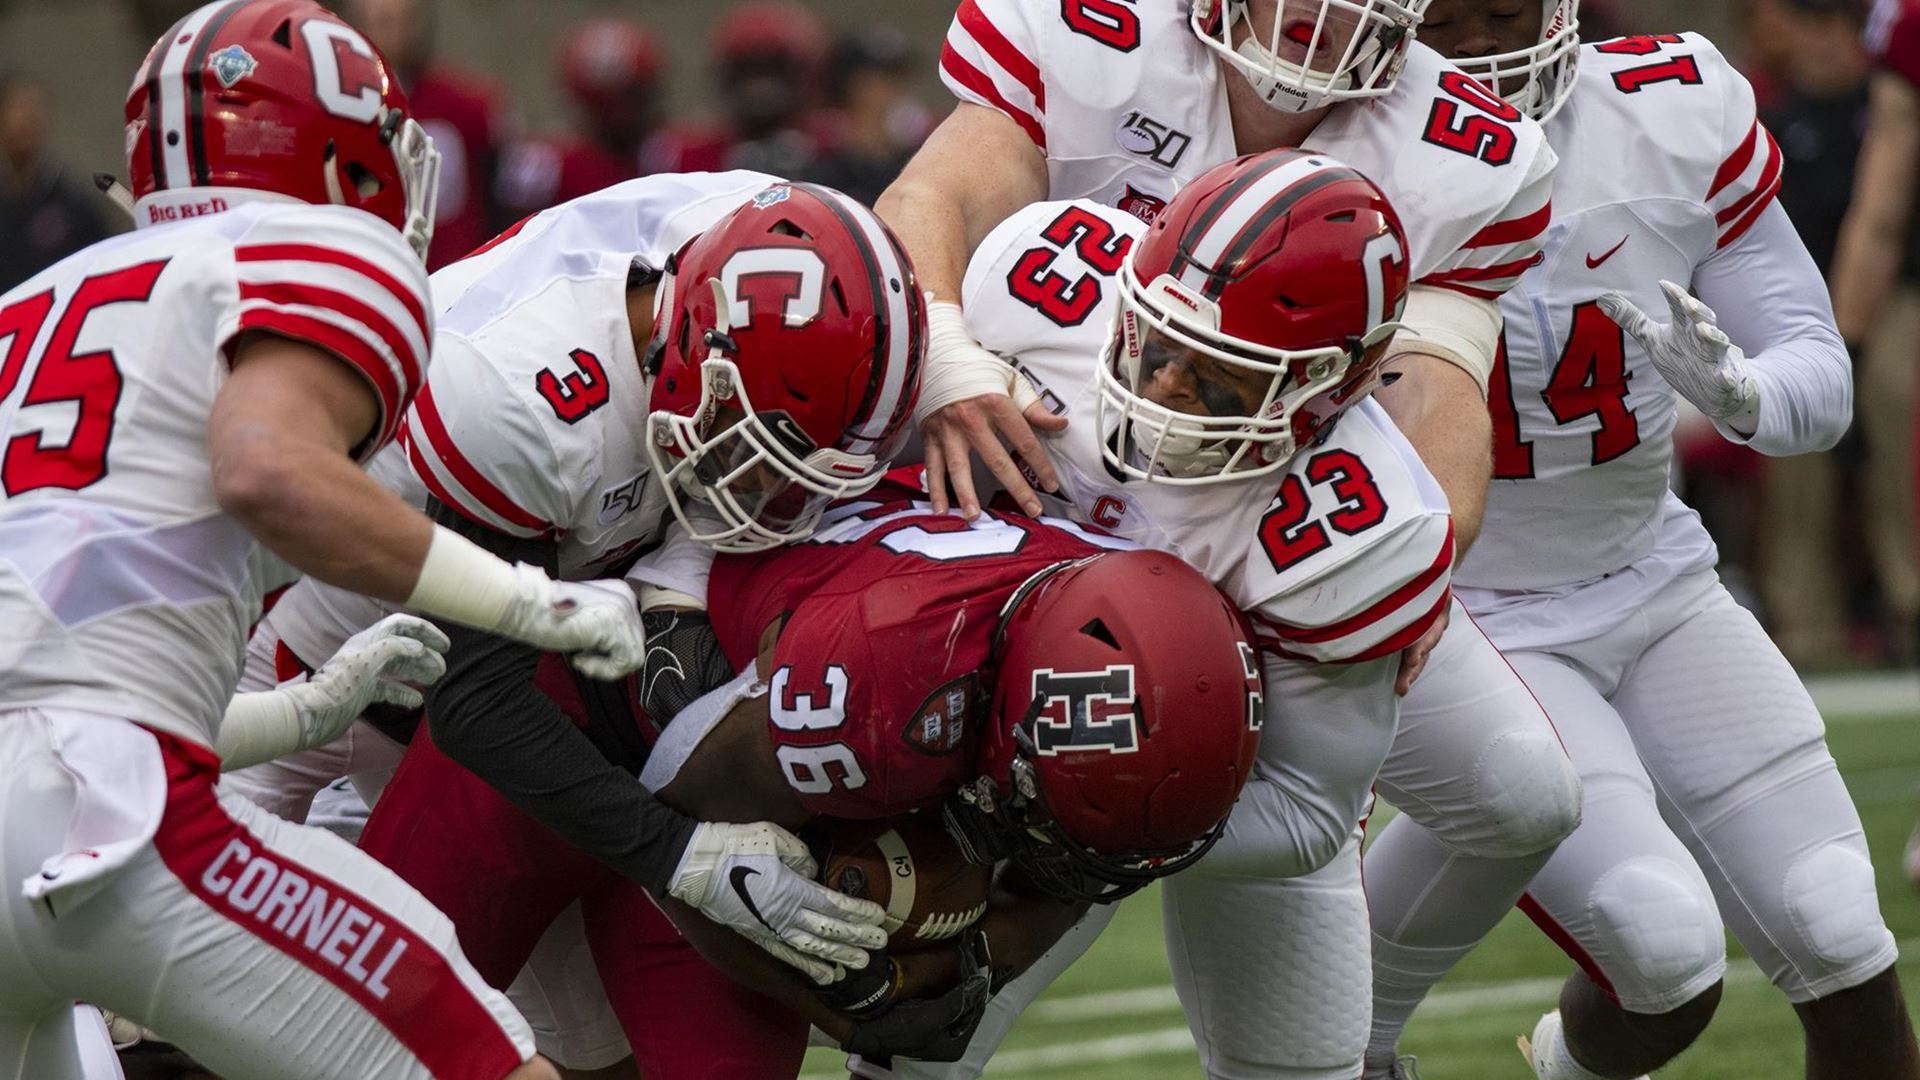 Cornell loses third straight after 35-22 loss to Harvard